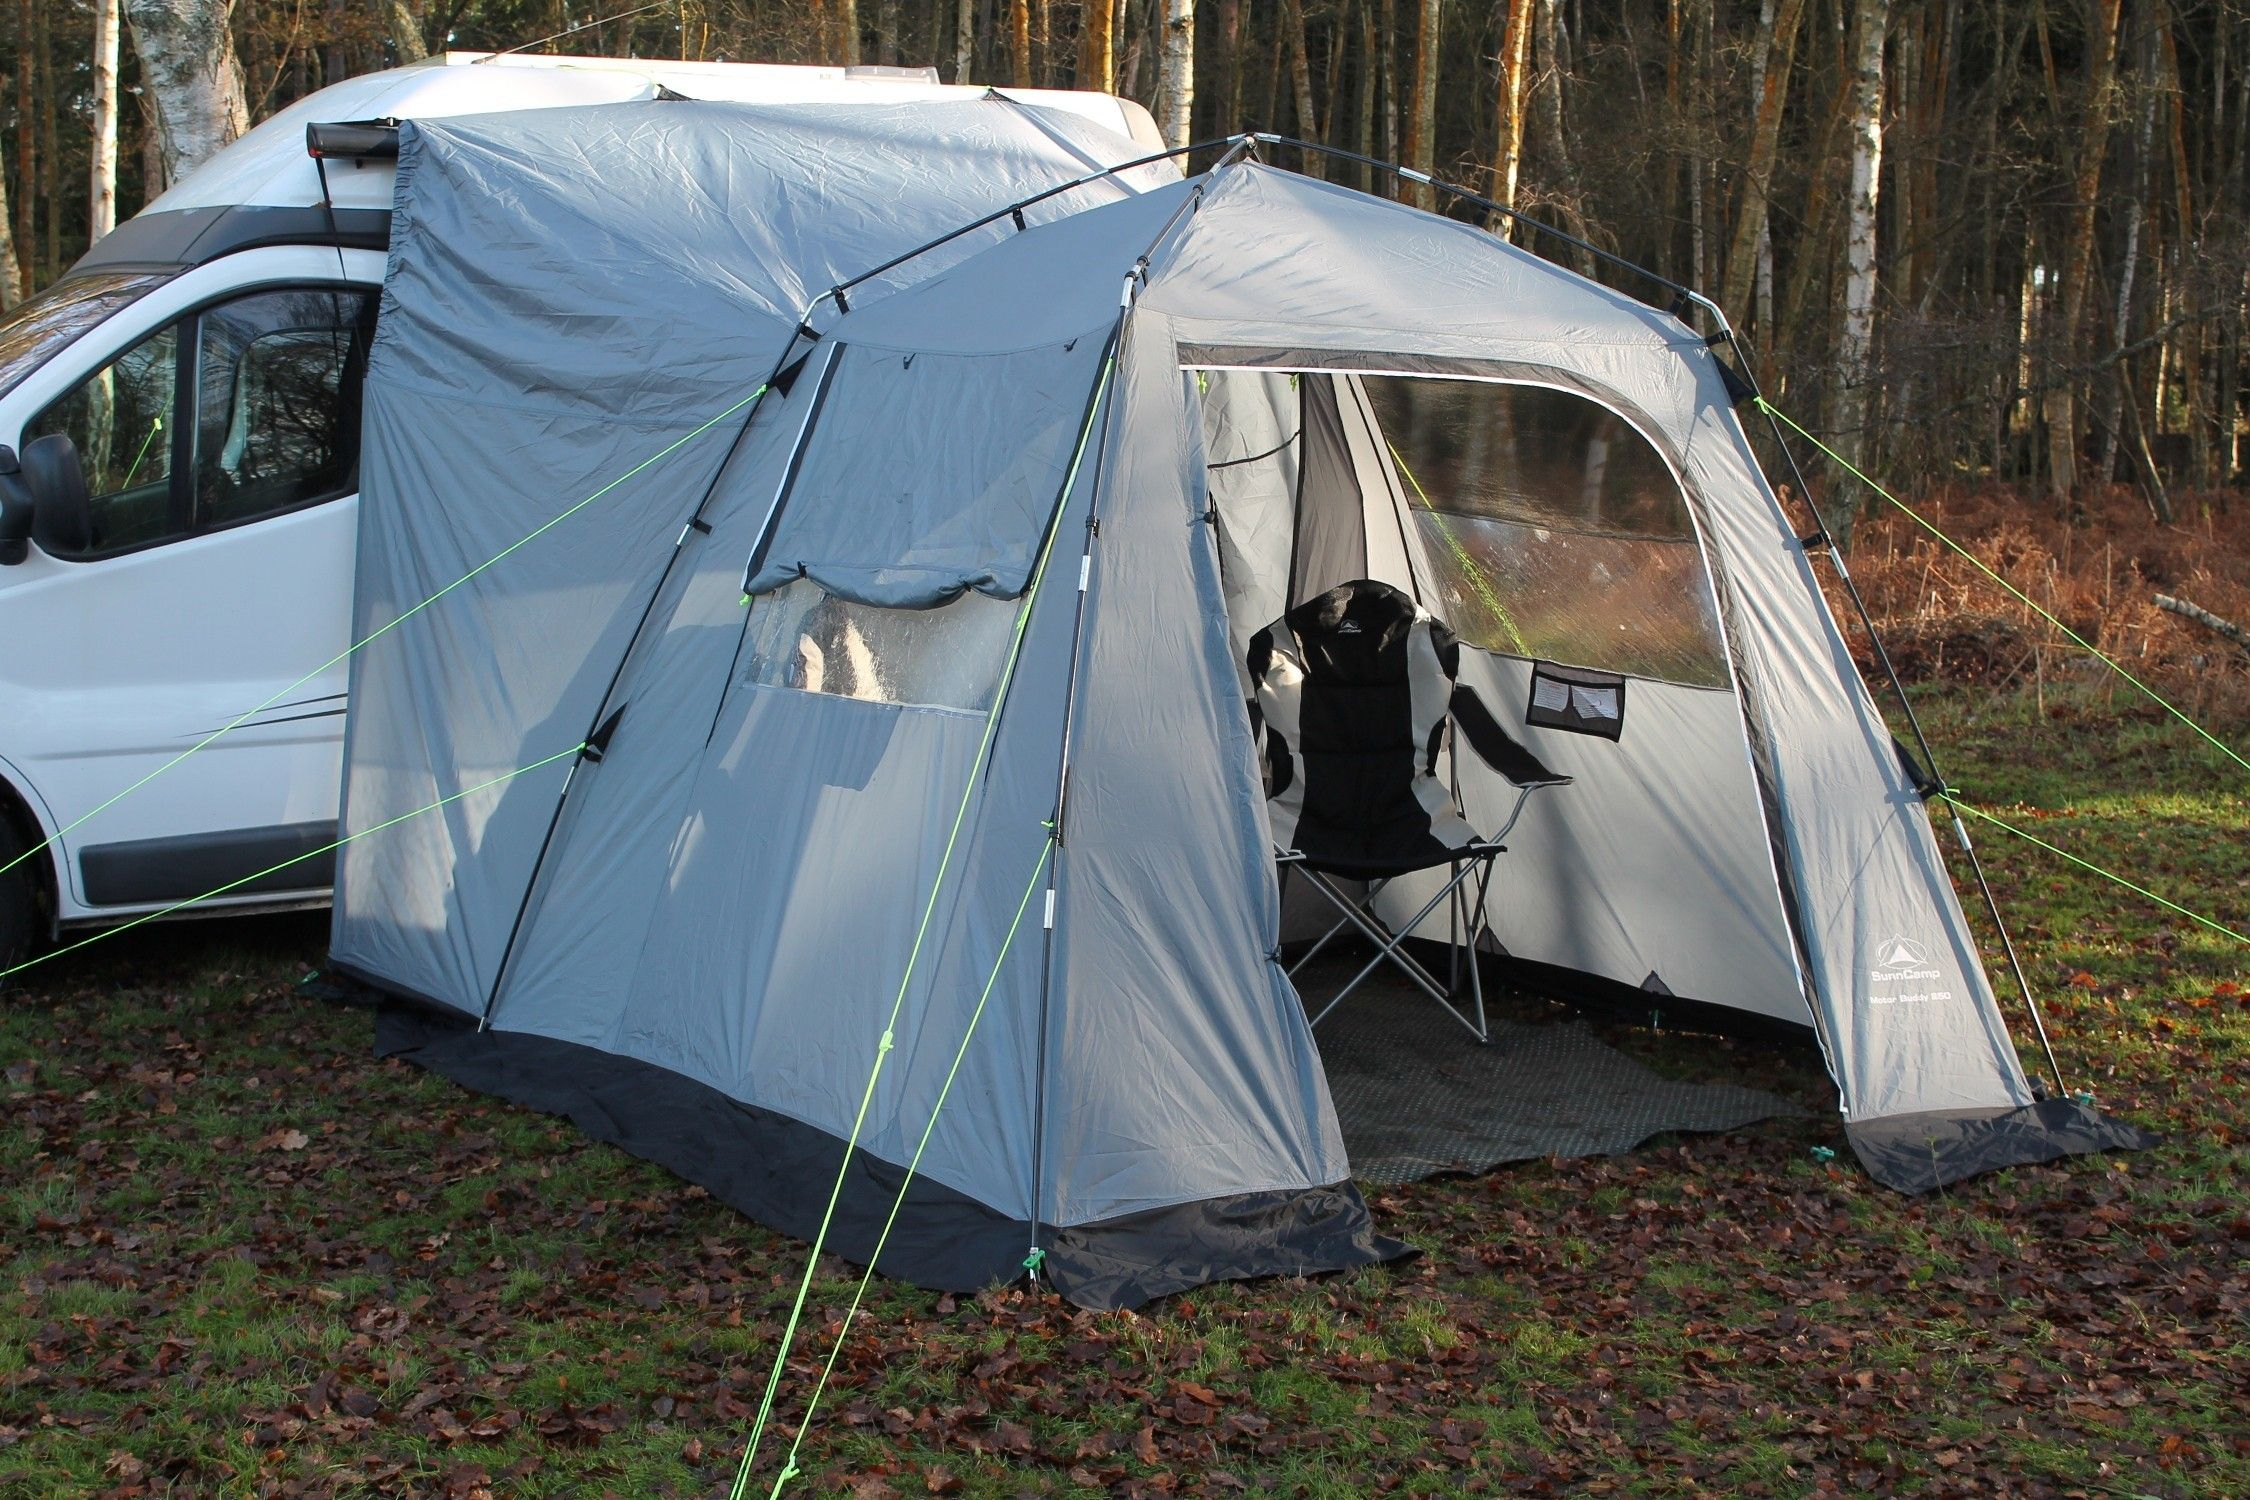 pleasant also home decor camping awnings portable patio of awning for